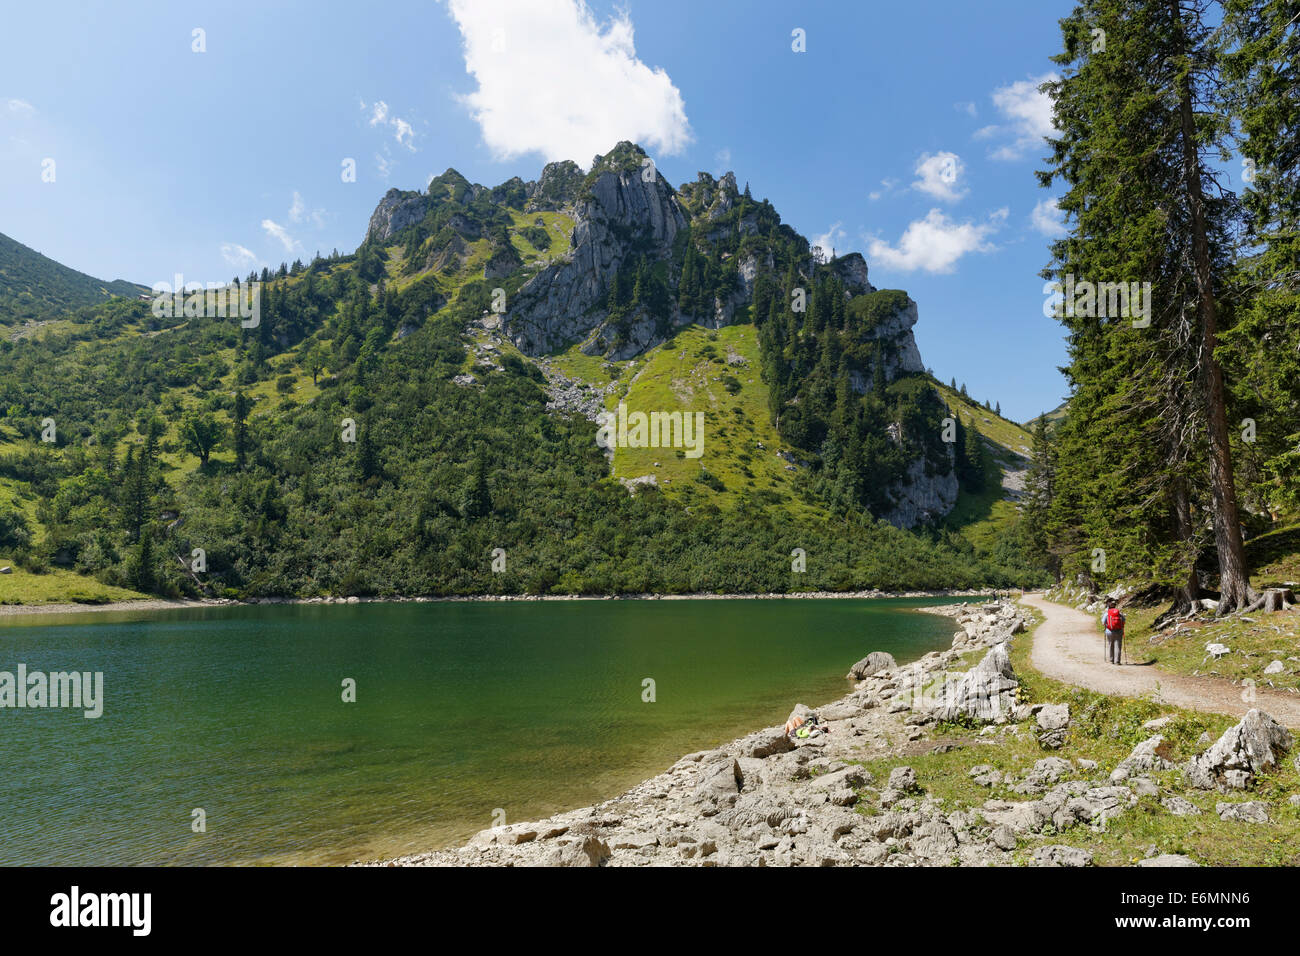 Soinsee Lake and Mt Ruchenköpfe, Bayrischzell, Mangfall mountains, Upper Bavaria, Bavaria, Germany - Stock Image